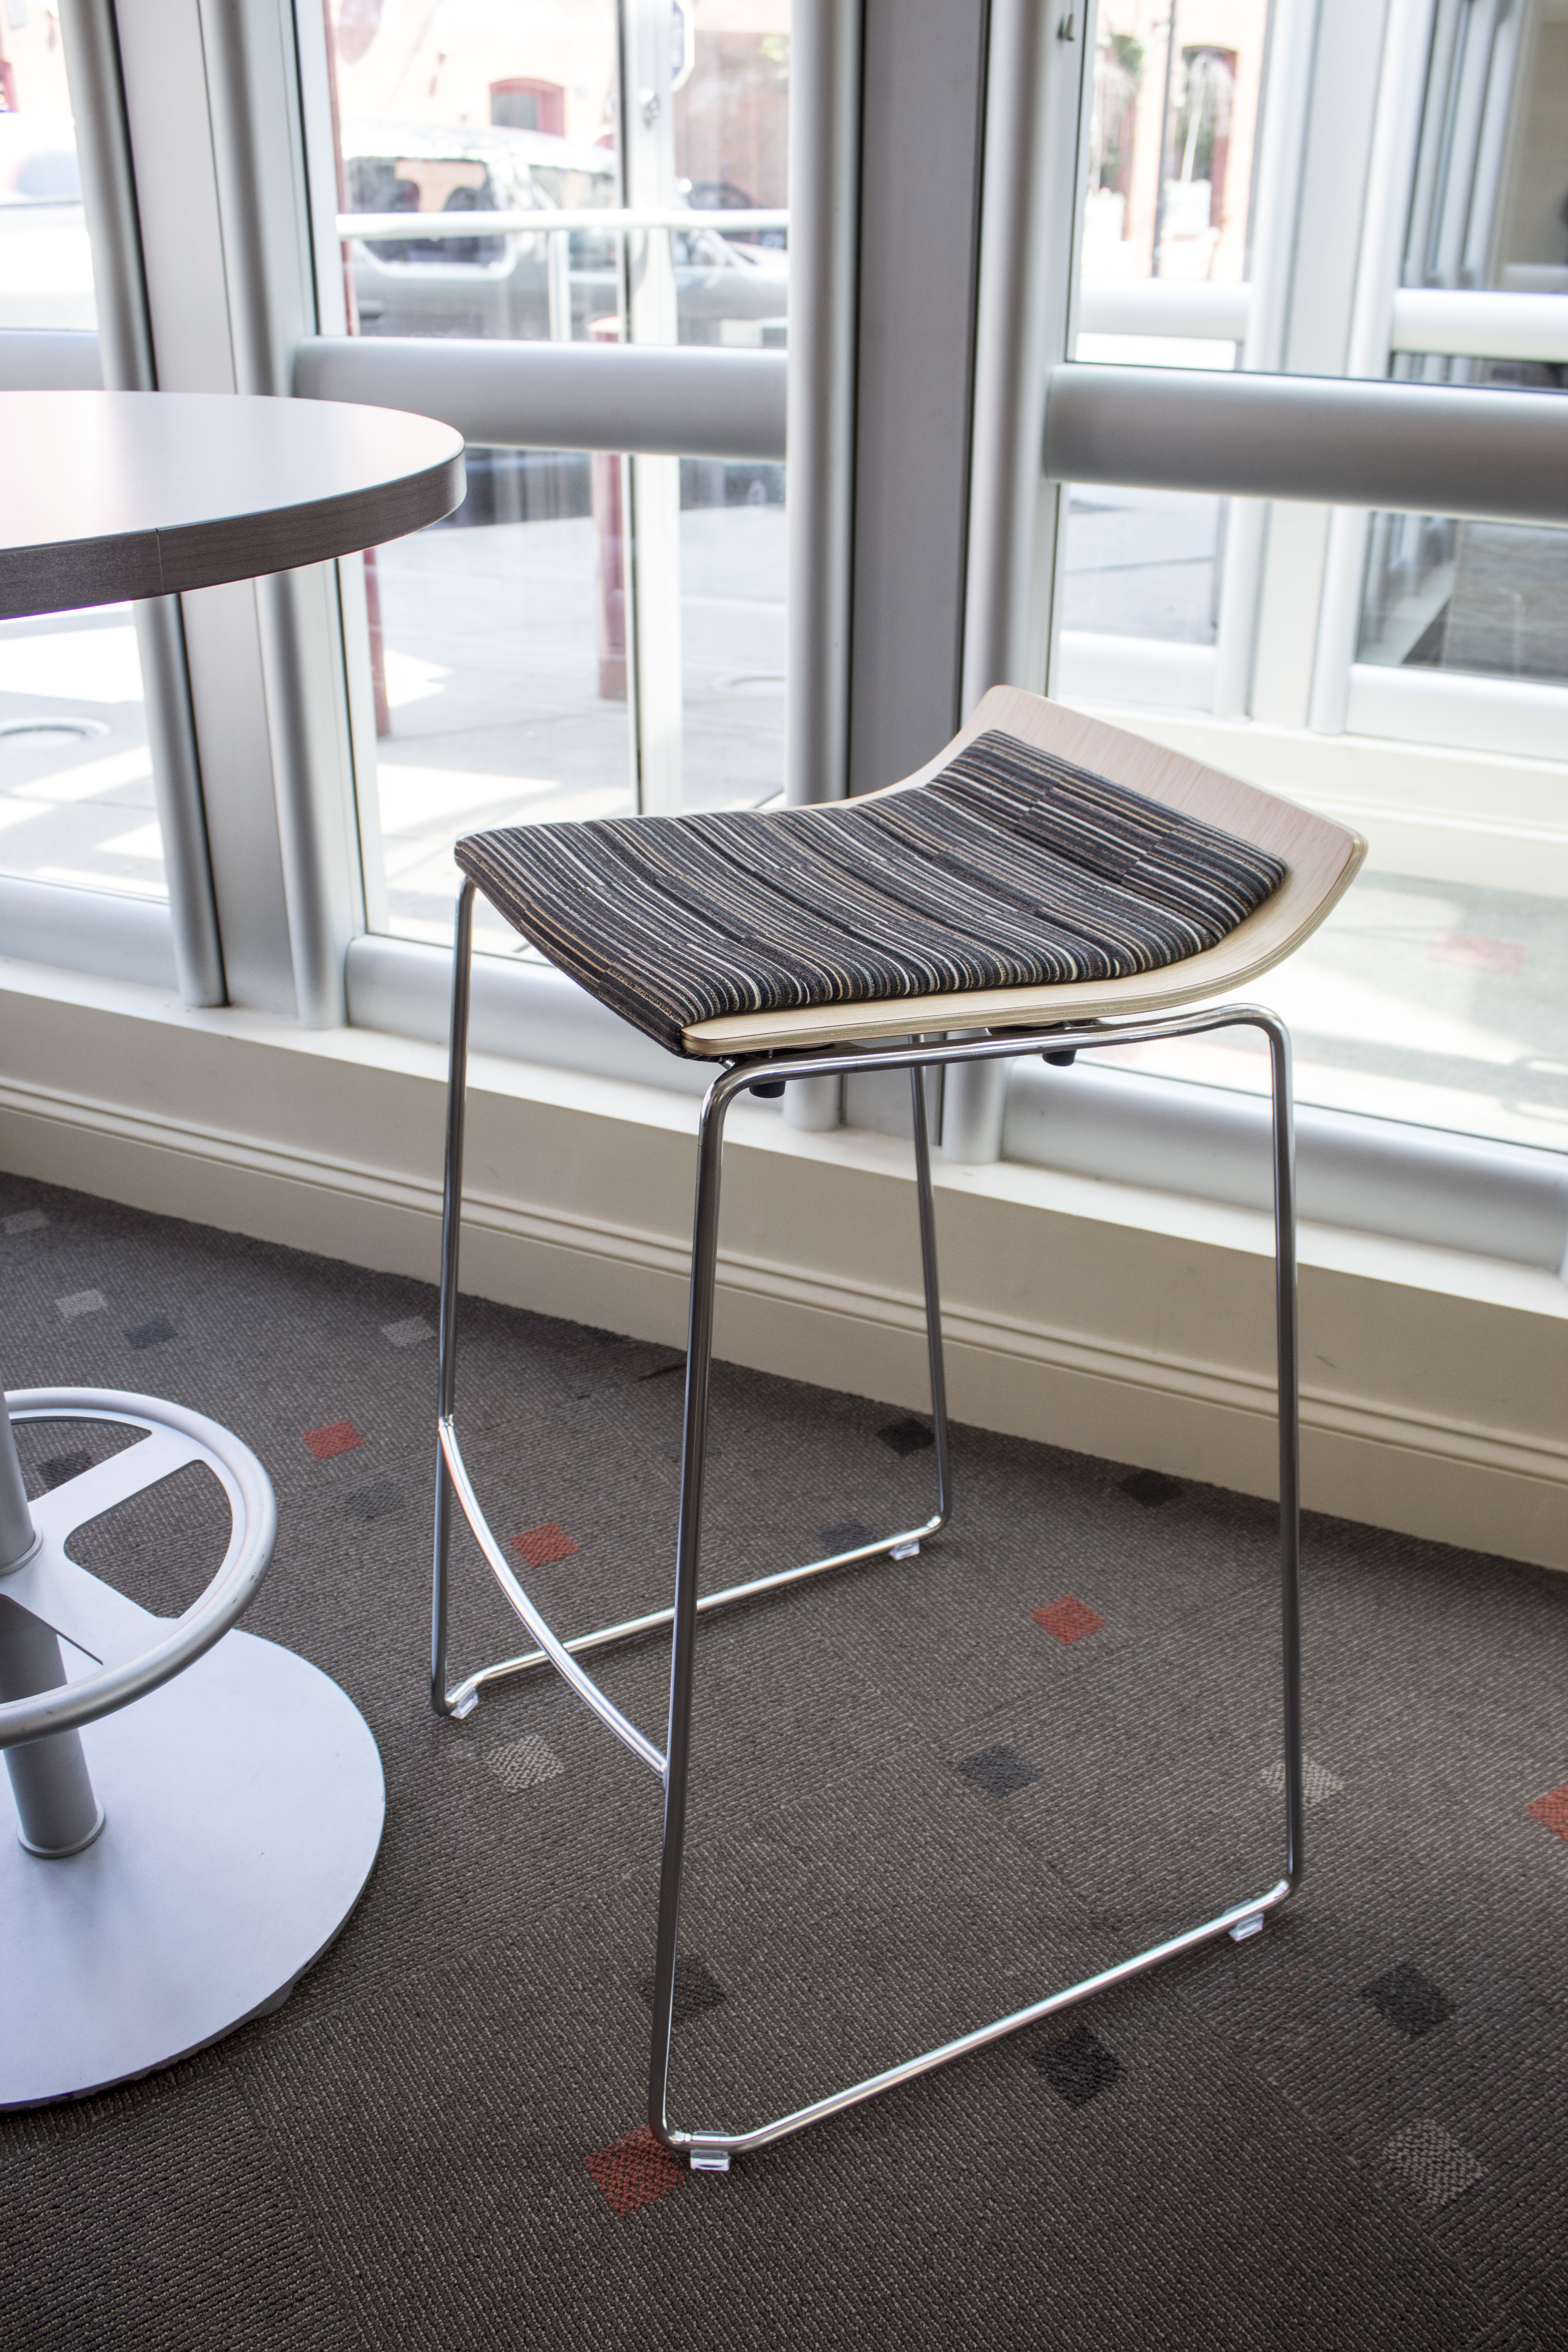 Allsteel Take 5 Stool with Art of Board Seat Fabric